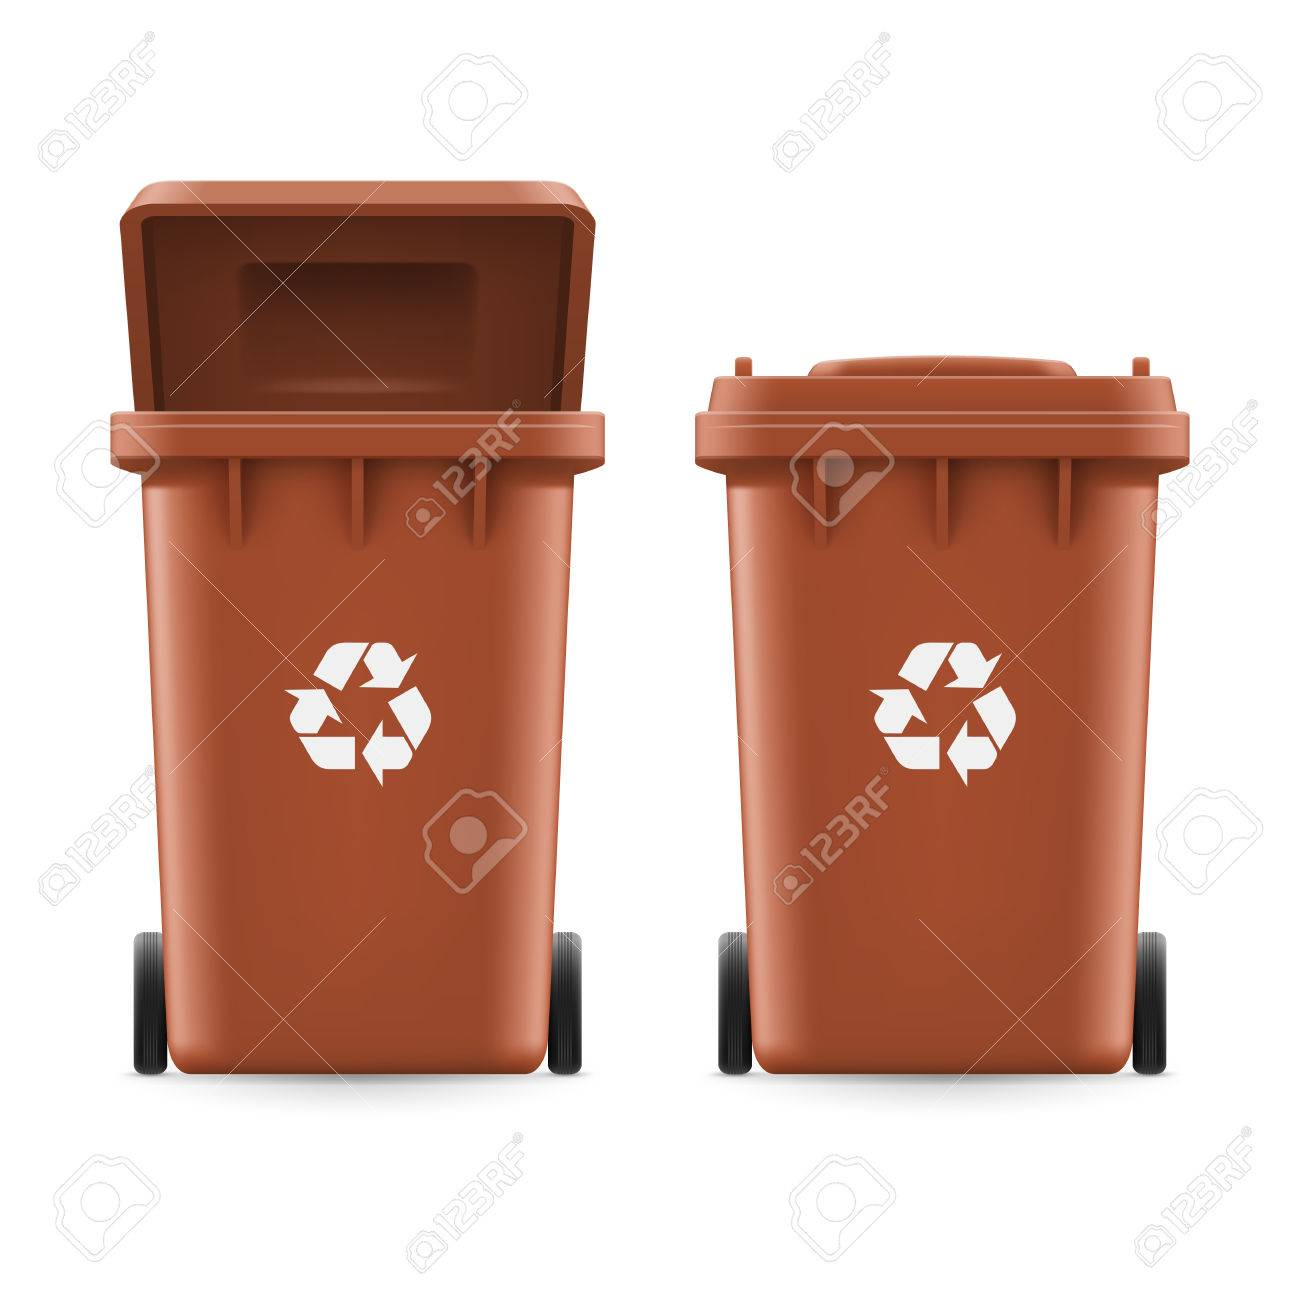 Set of brown buckets for trash with sign arrow - 51364395